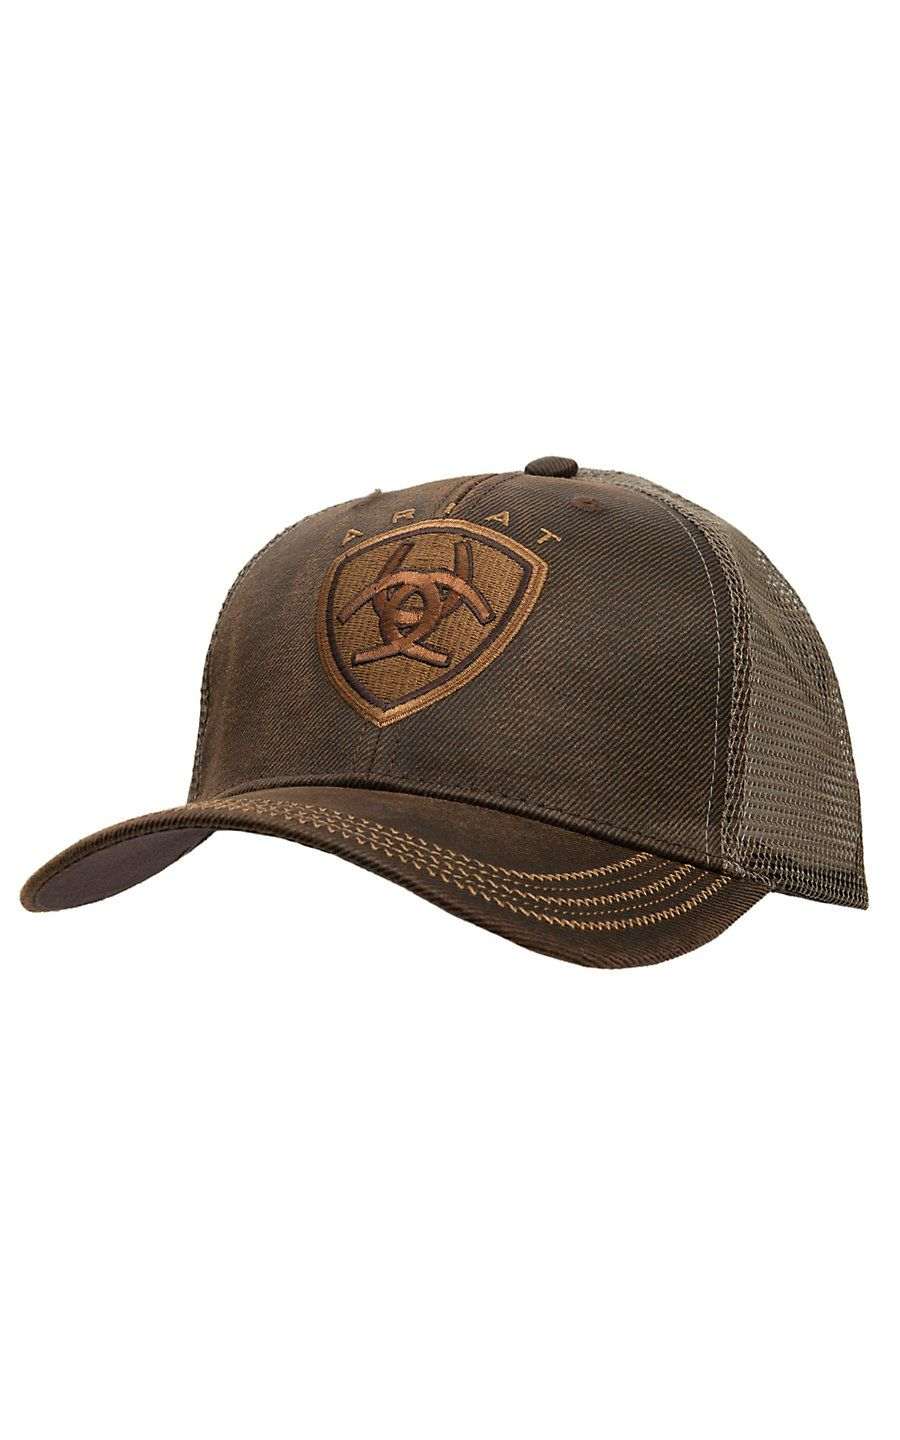 Ariat Brown Oilskin with Mesh Back Logo Velcro Back Cap Gorras 9b455fbc9d7